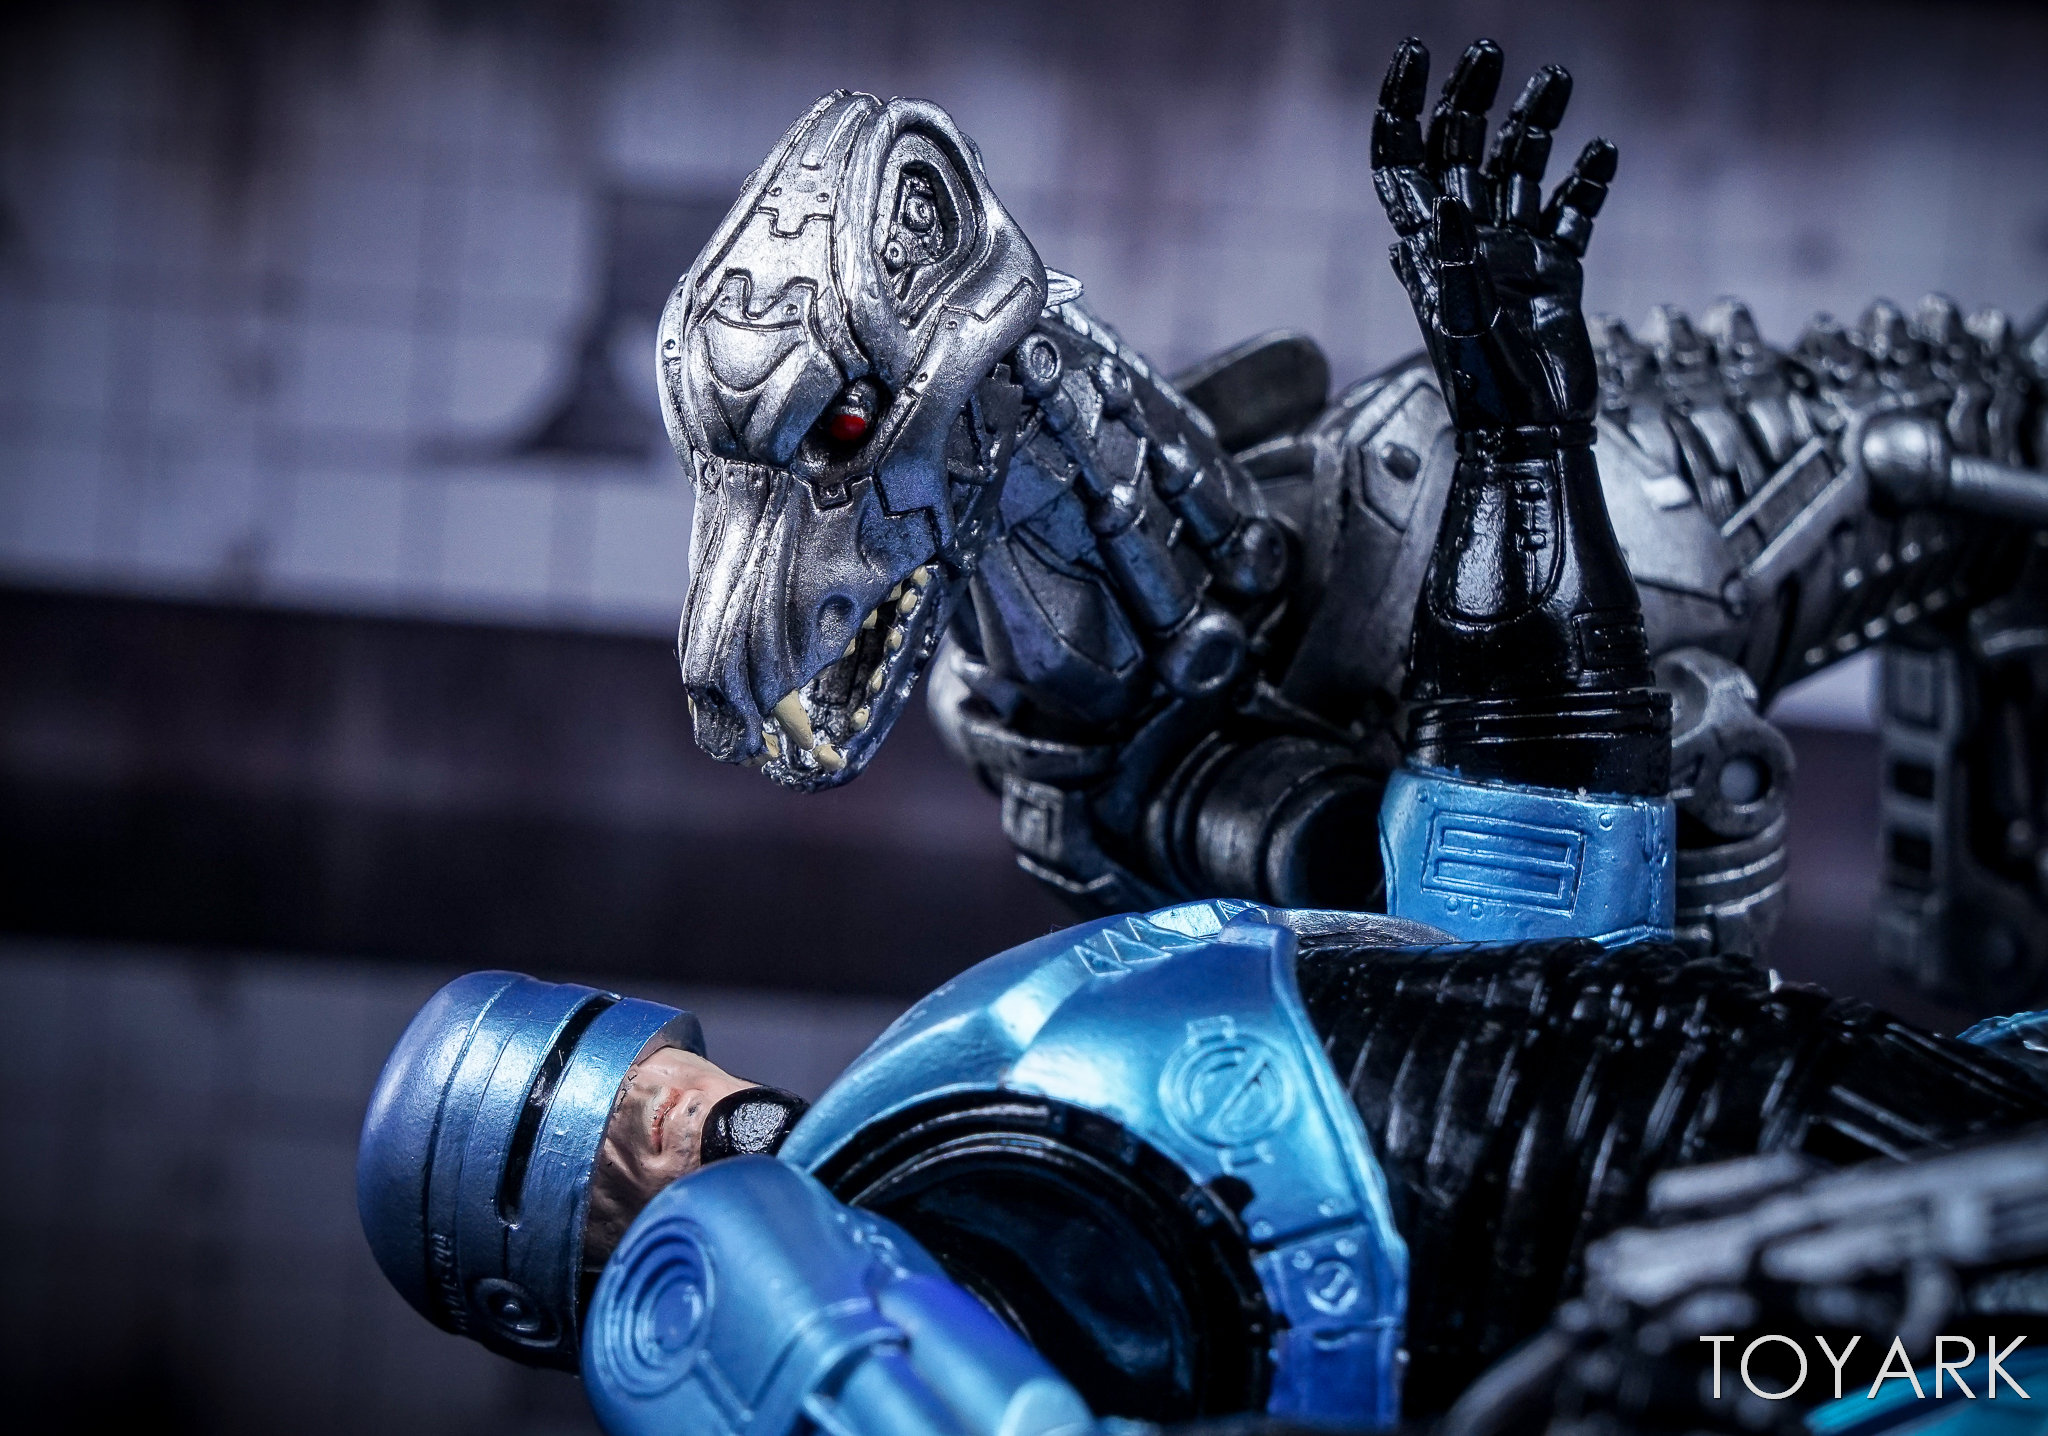 http://news.toyark.com/wp-content/uploads/sites/4/2017/12/NECA-EndoCop-and-Terminator-Dog-039.jpg